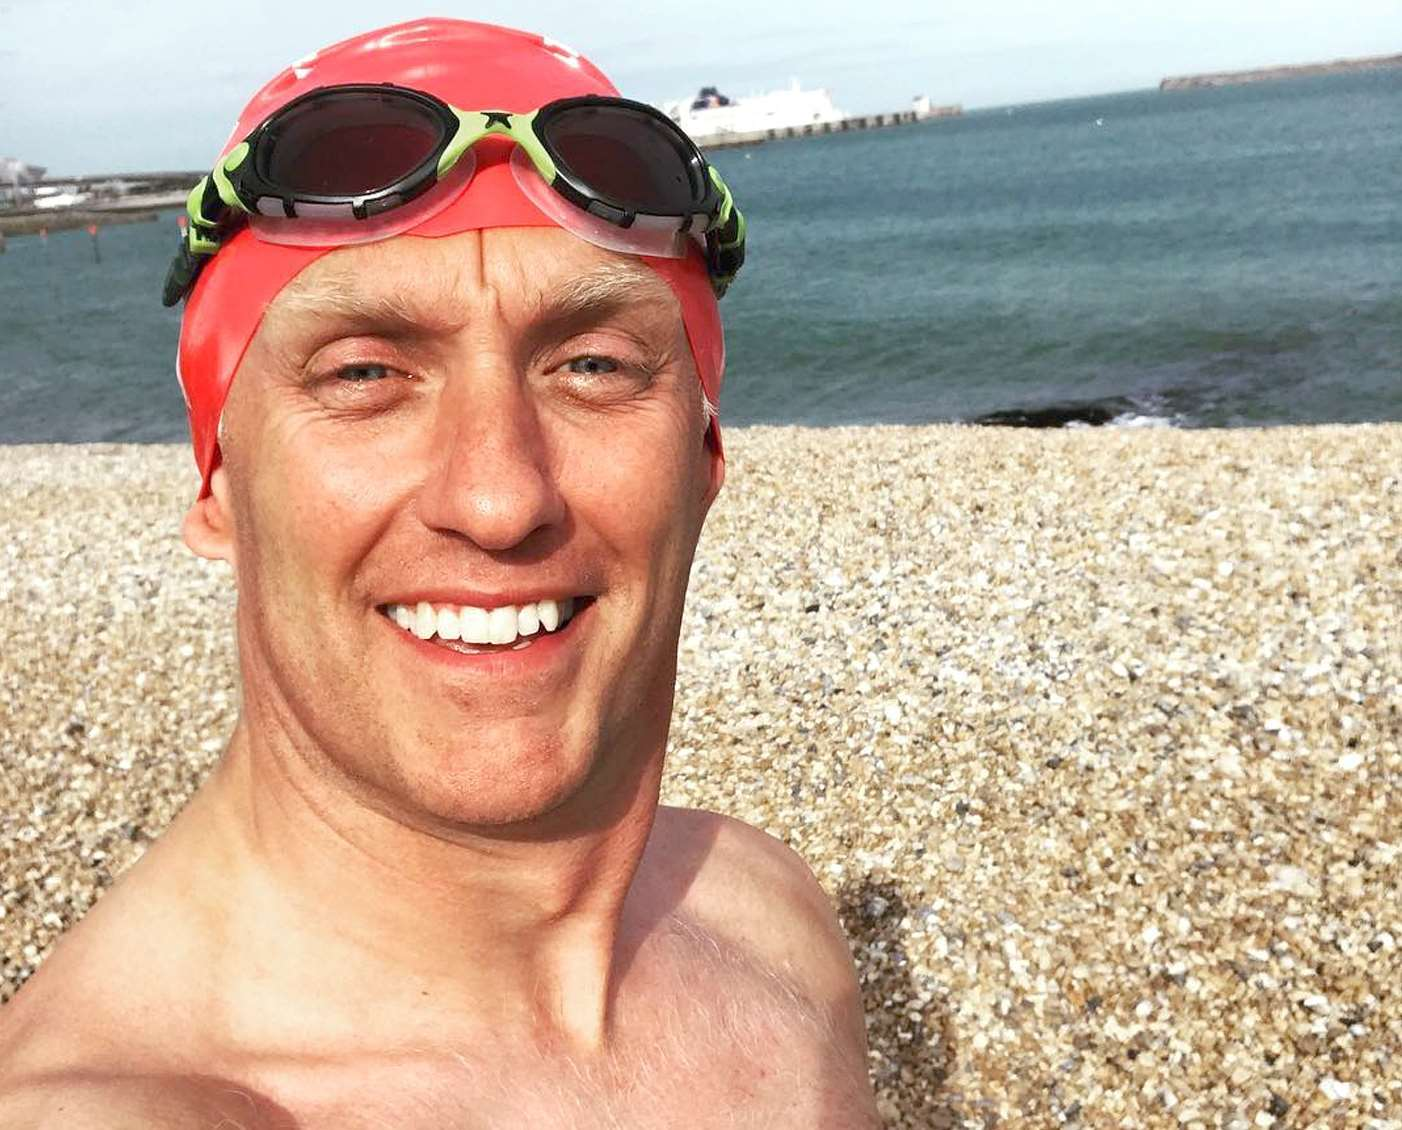 Mike Dawson is aiming to be the first person with multiple sclerosis to complete a solo swim of the English Channel.